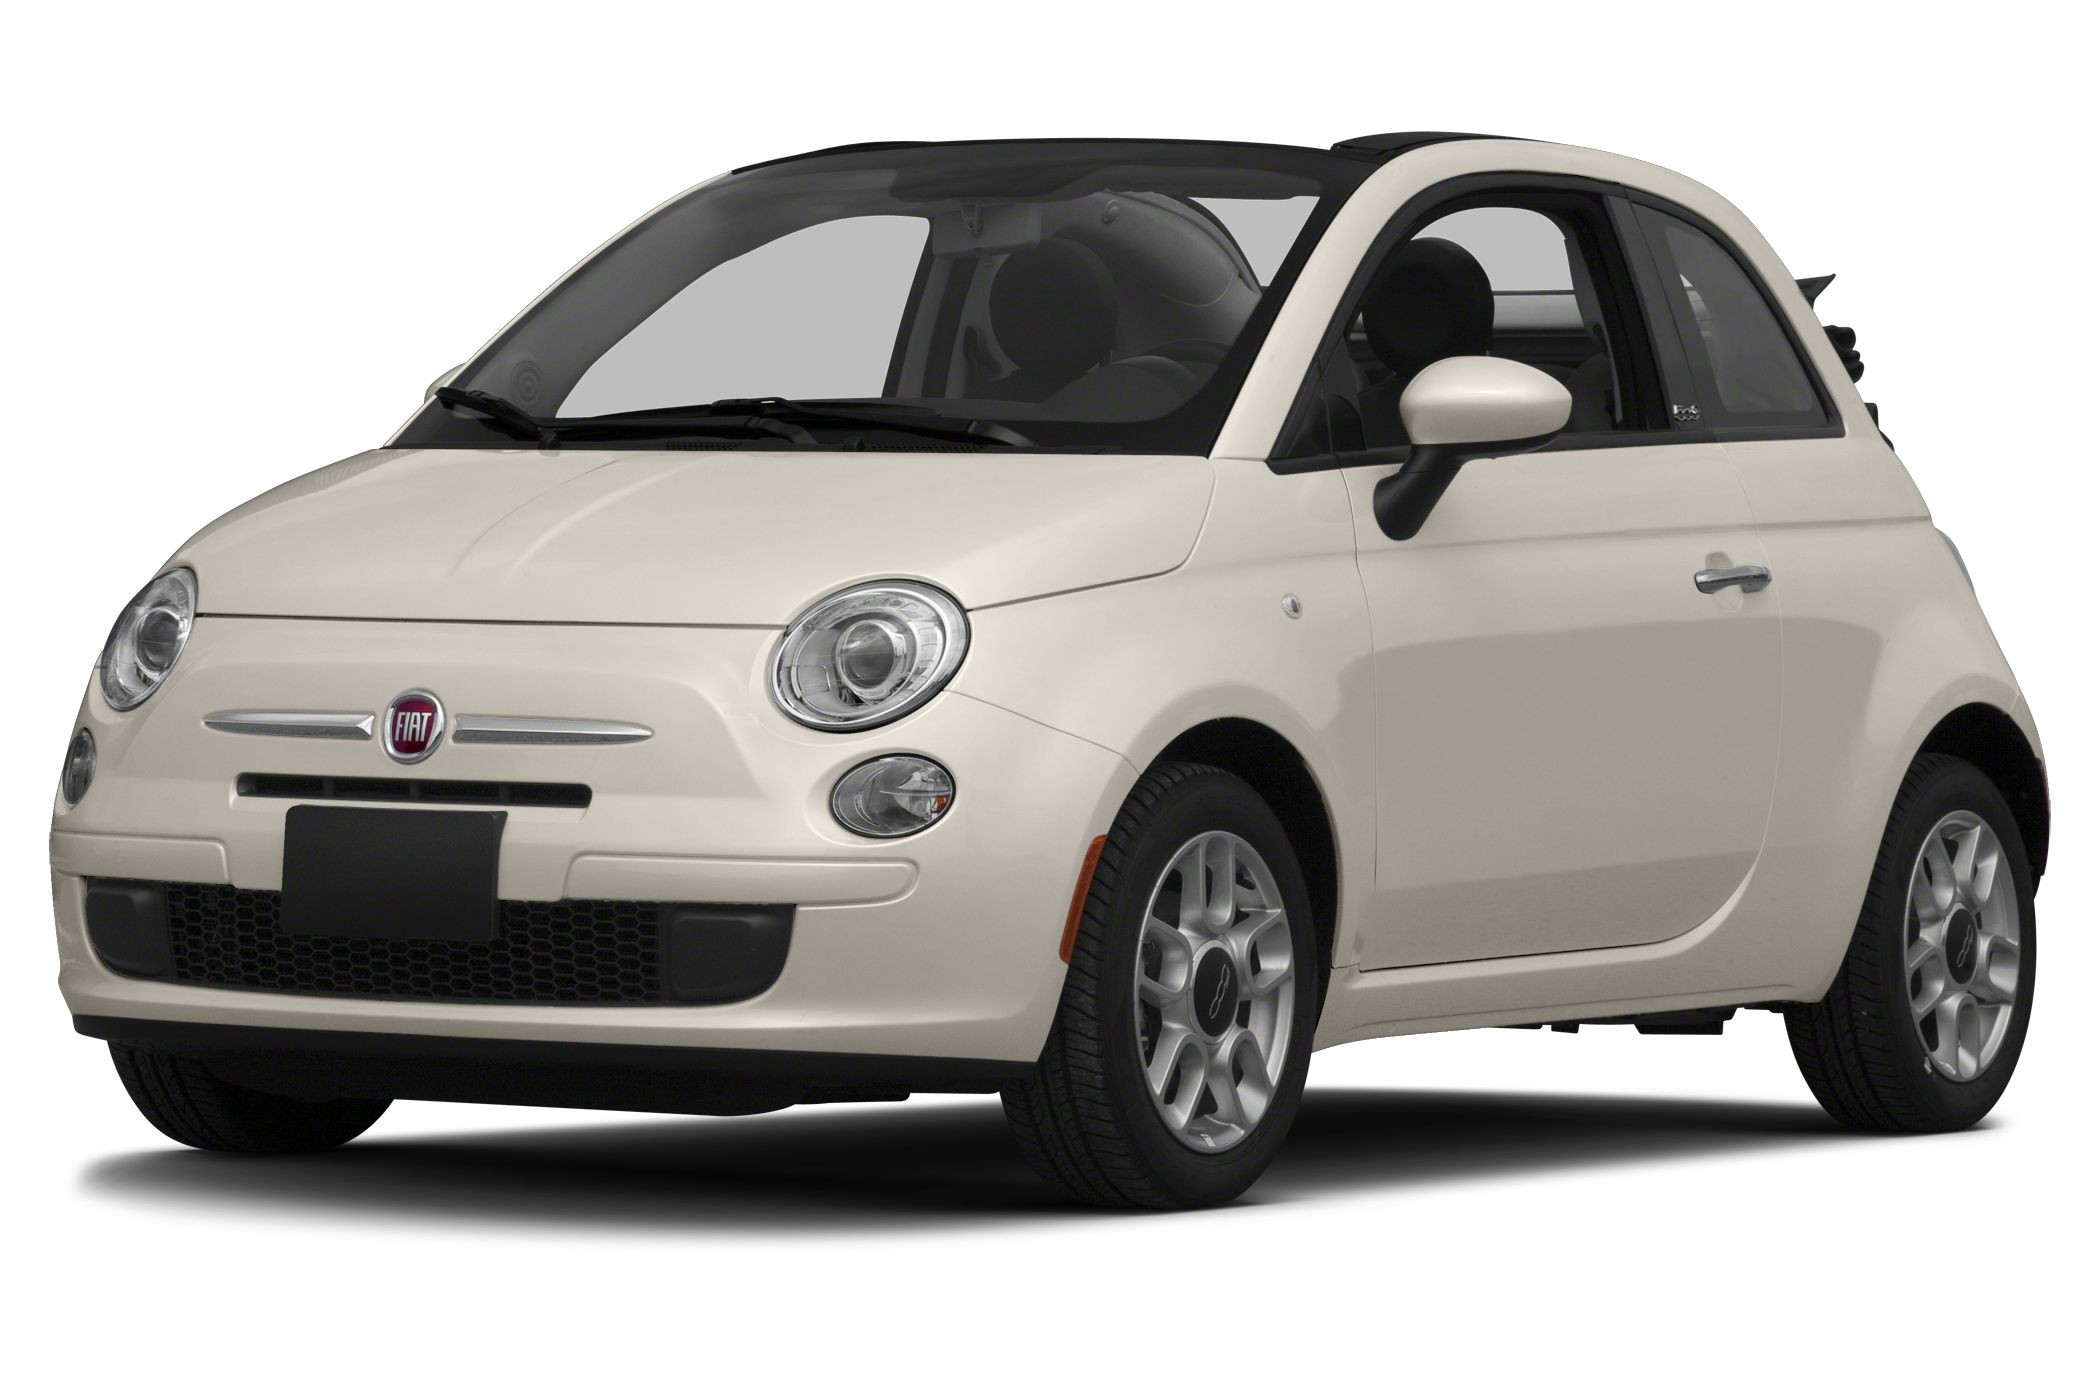 2013 Fiat 500C Lounge Convertible for sale in Bloomington for $11,998 with 56,234 miles.